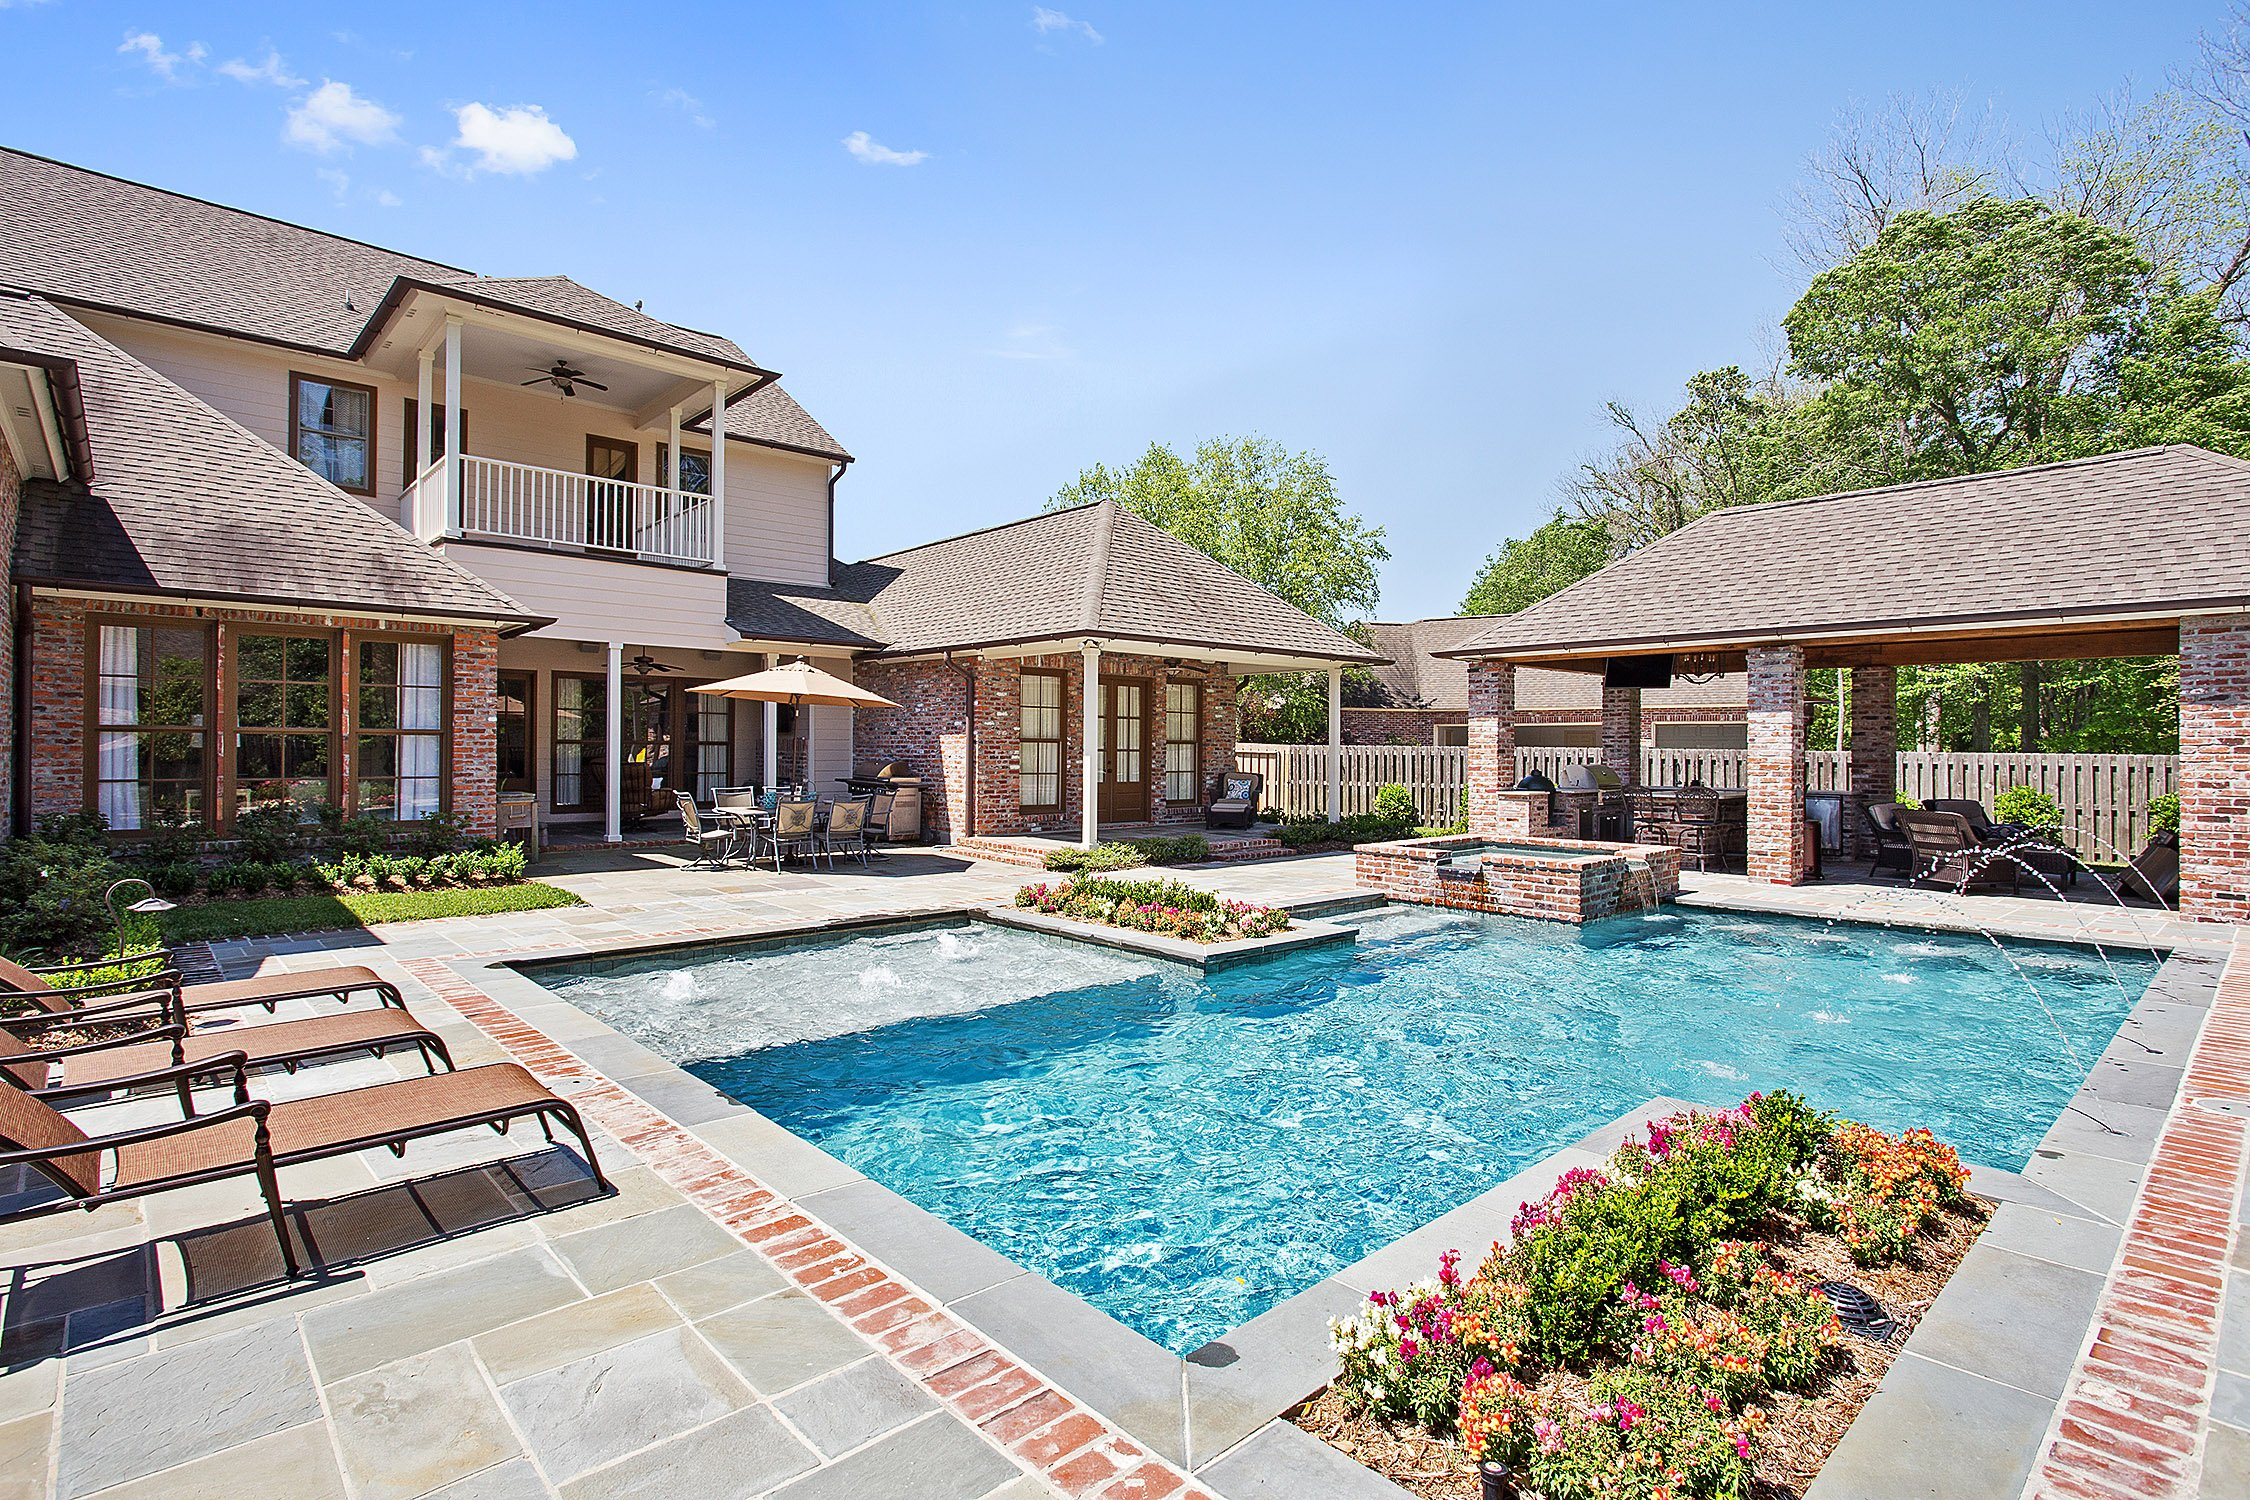 Gunite Pool in Baton Rouge